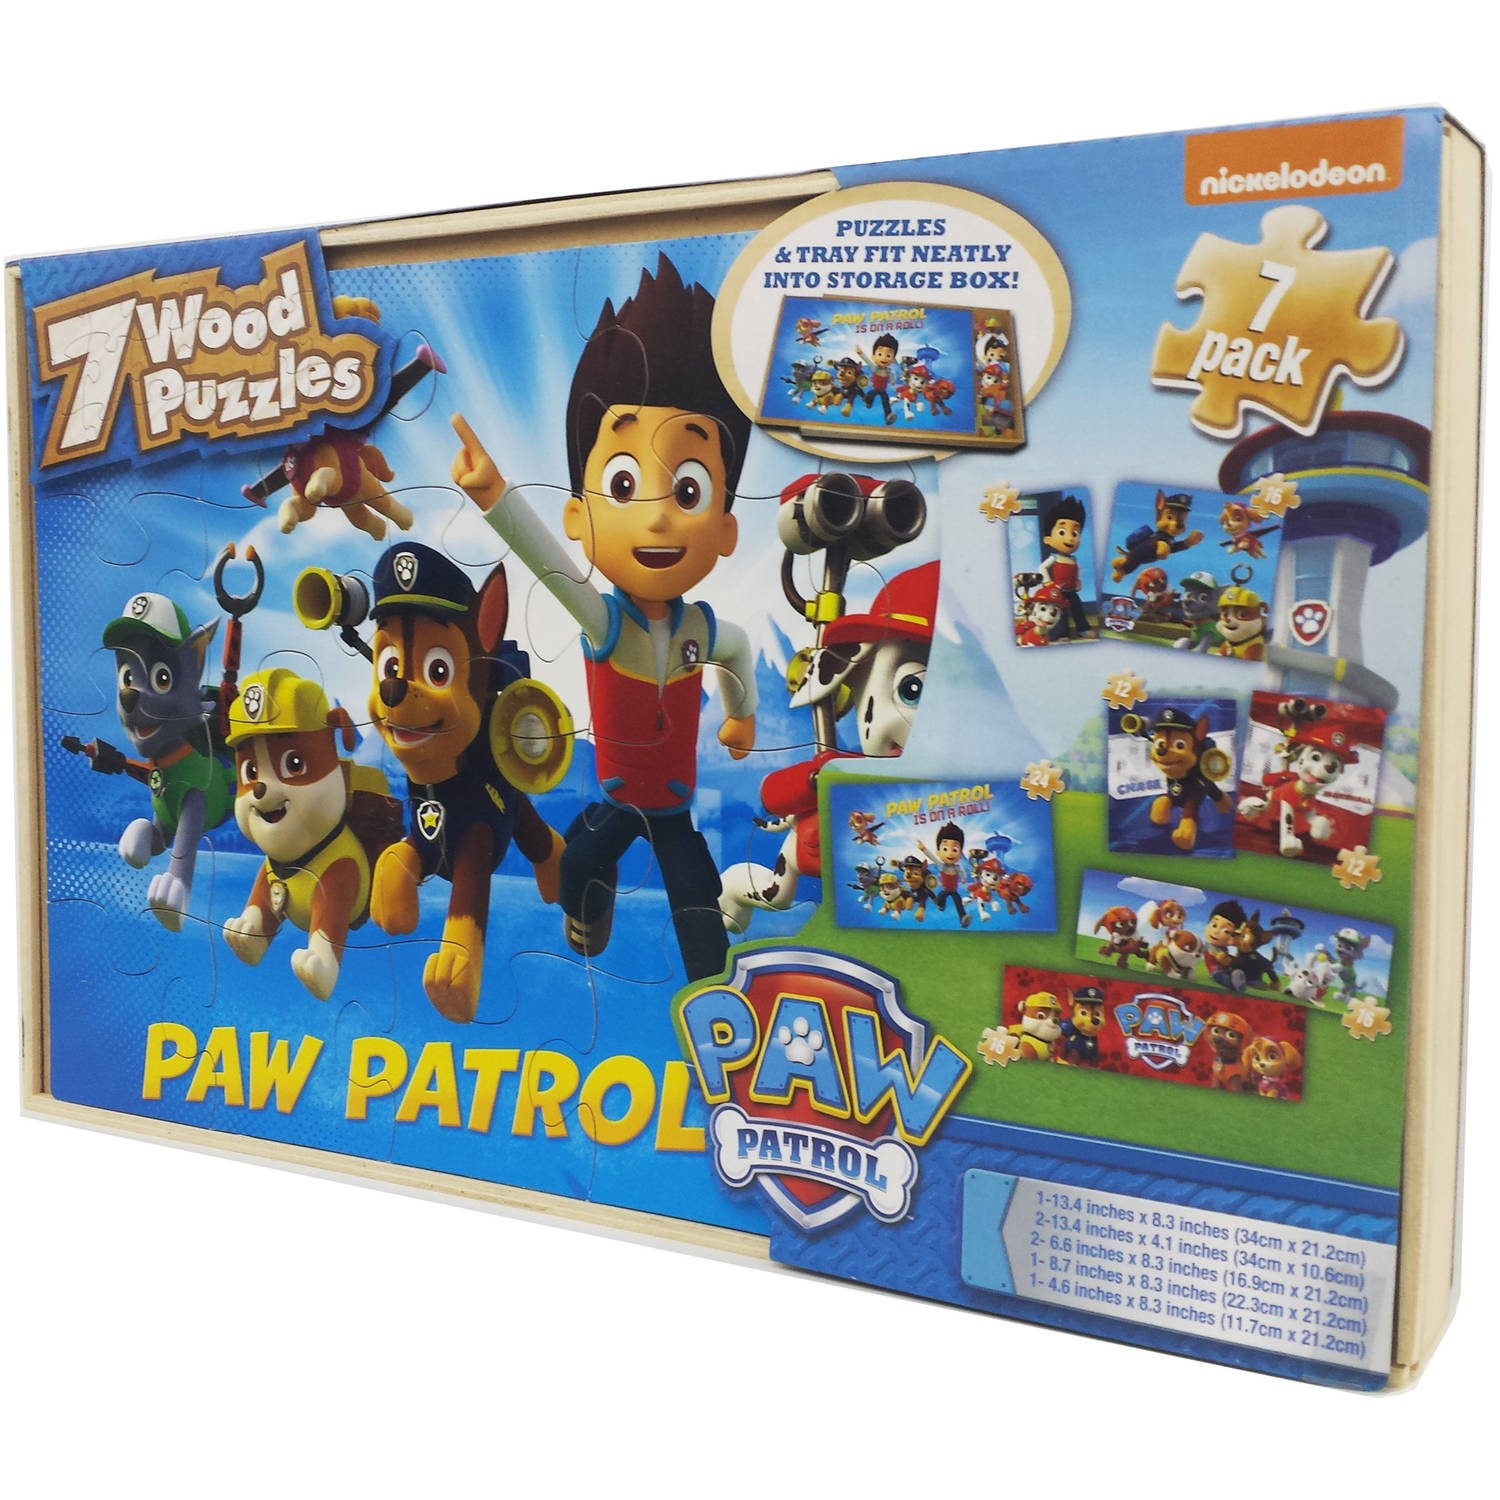 Paw Patrol Toy Organizer Bin Cubby Kids Child Storage Box: Nickelodeon Paw Patrol 7 Wood Jigsaw Puzzles In Wood